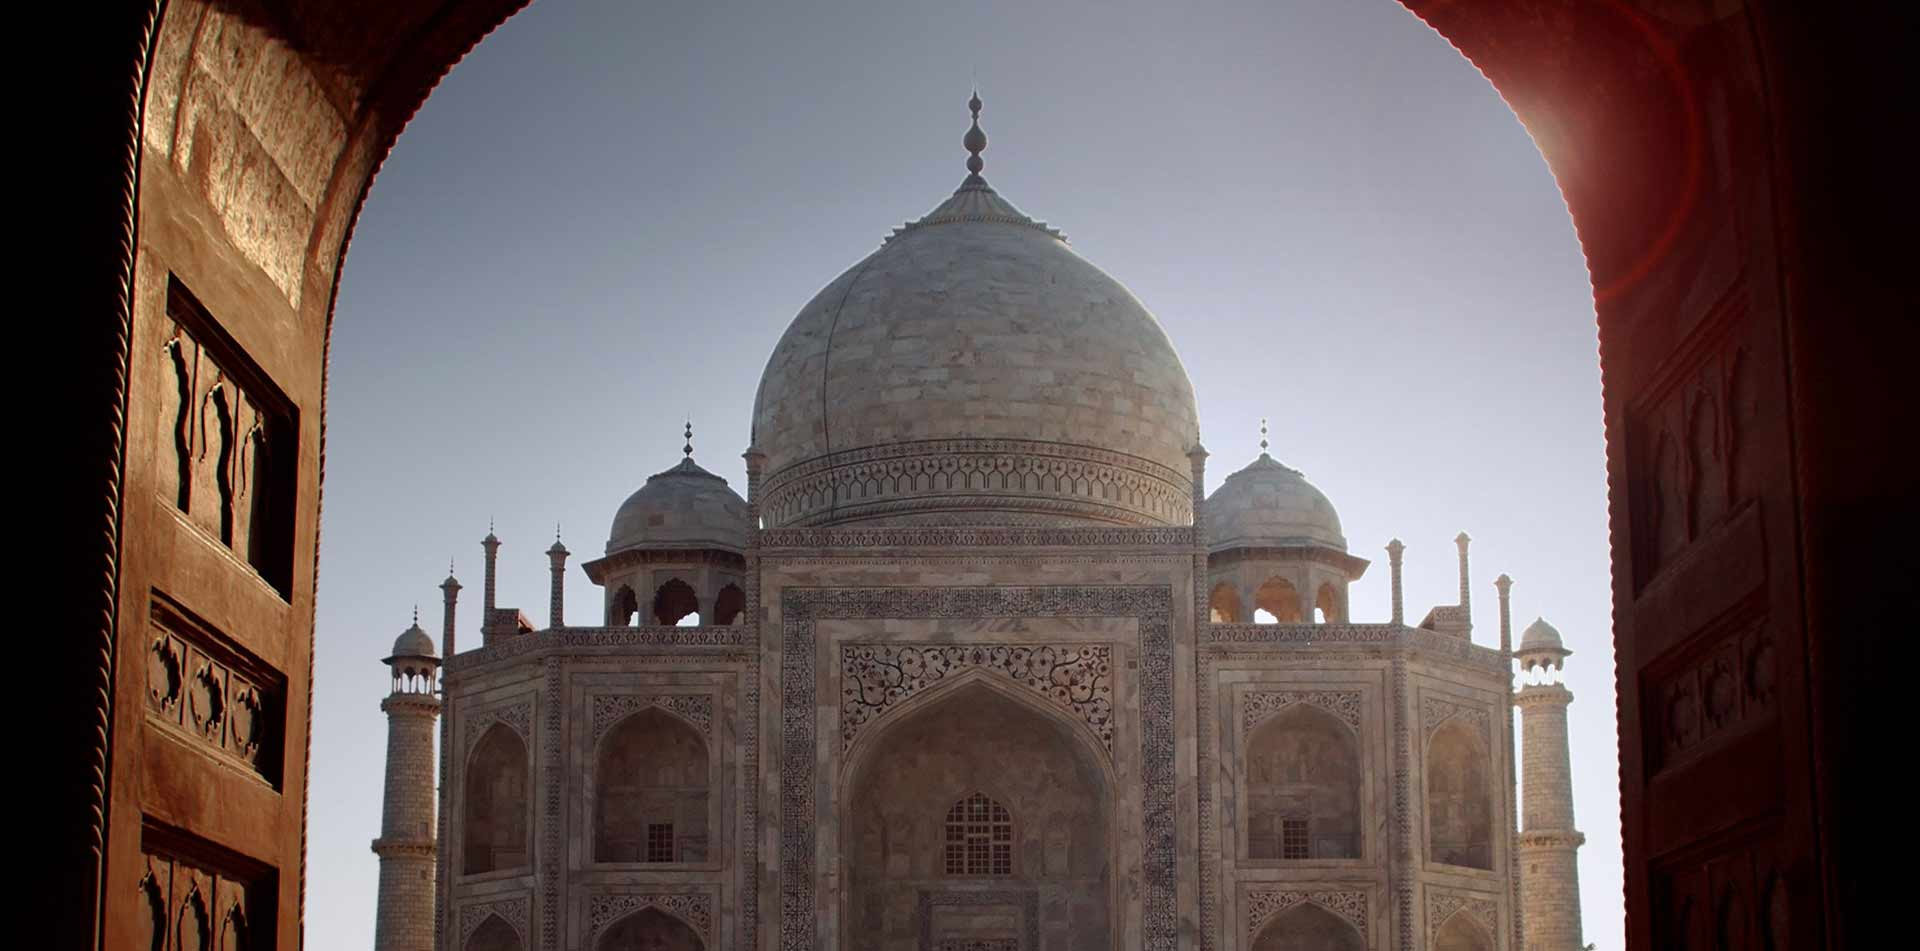 Asia India Agra view of Taj Mahal dome from archway UNESCO world heritage site - luxury vacation destinations